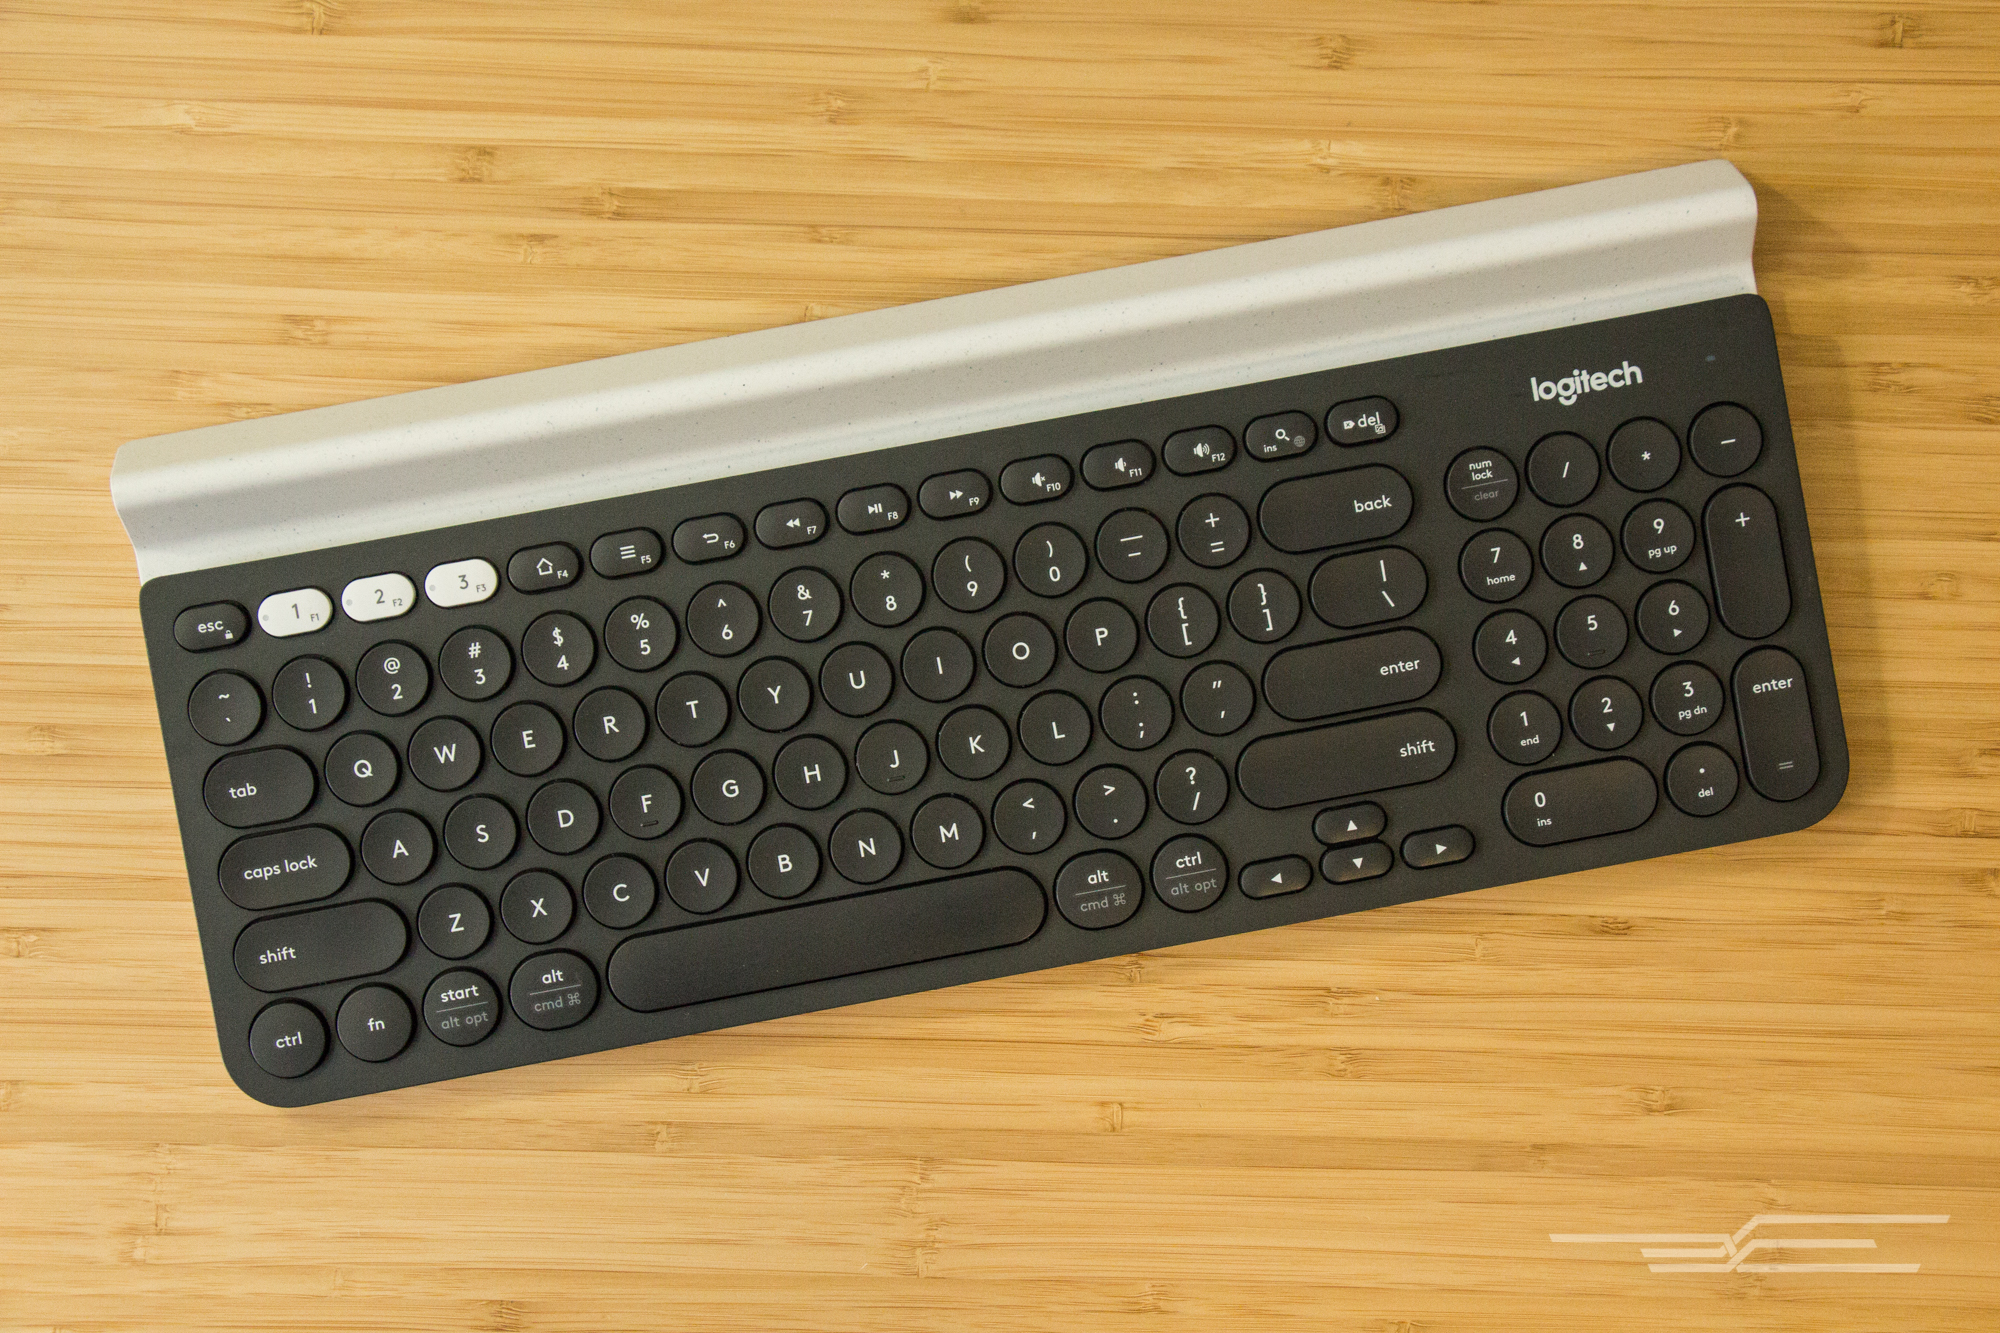 126c6440b71 A keyboard with a number pad: Logitech K780